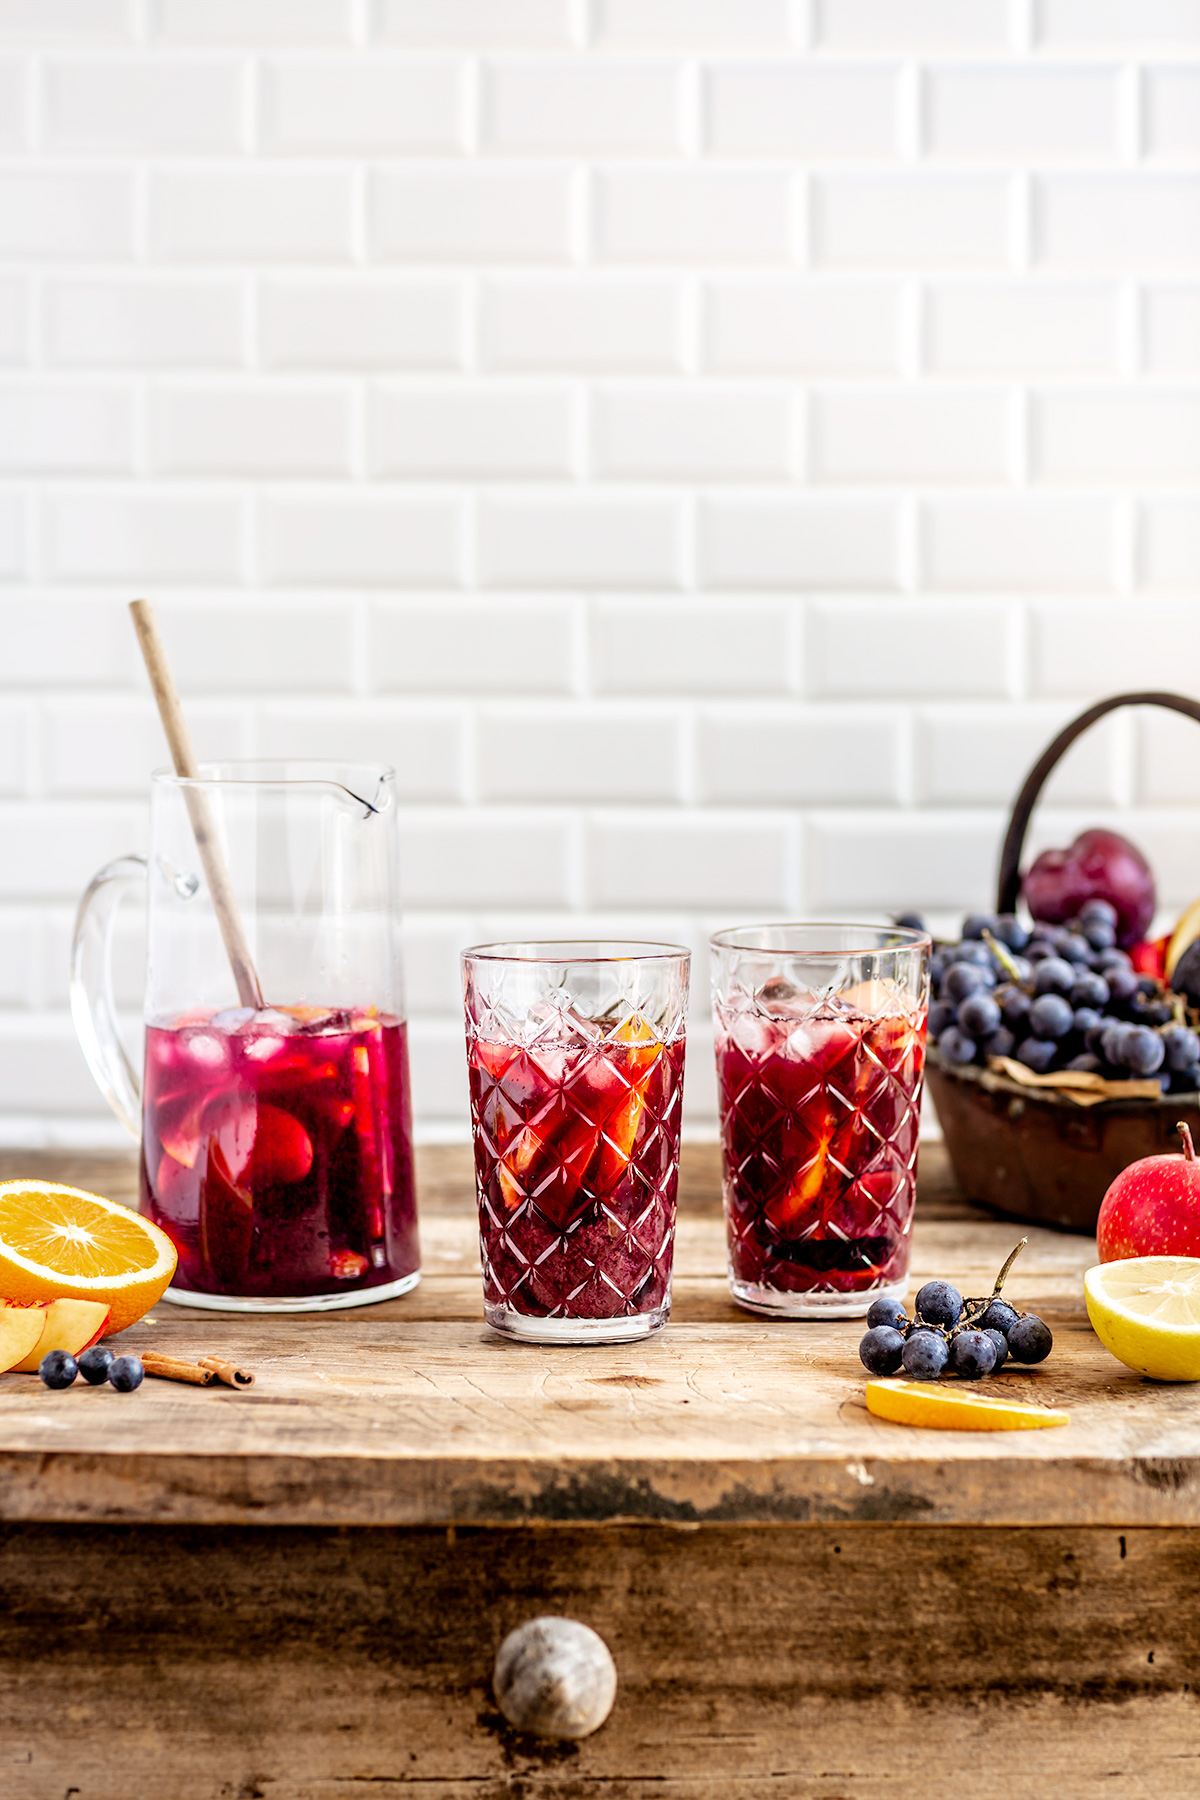 Simple HEALTHY non alcoholic kombucha SANGRIA vegan recipe ricetta SANGRIA analcolica al KOMBUCHA facile light sansa